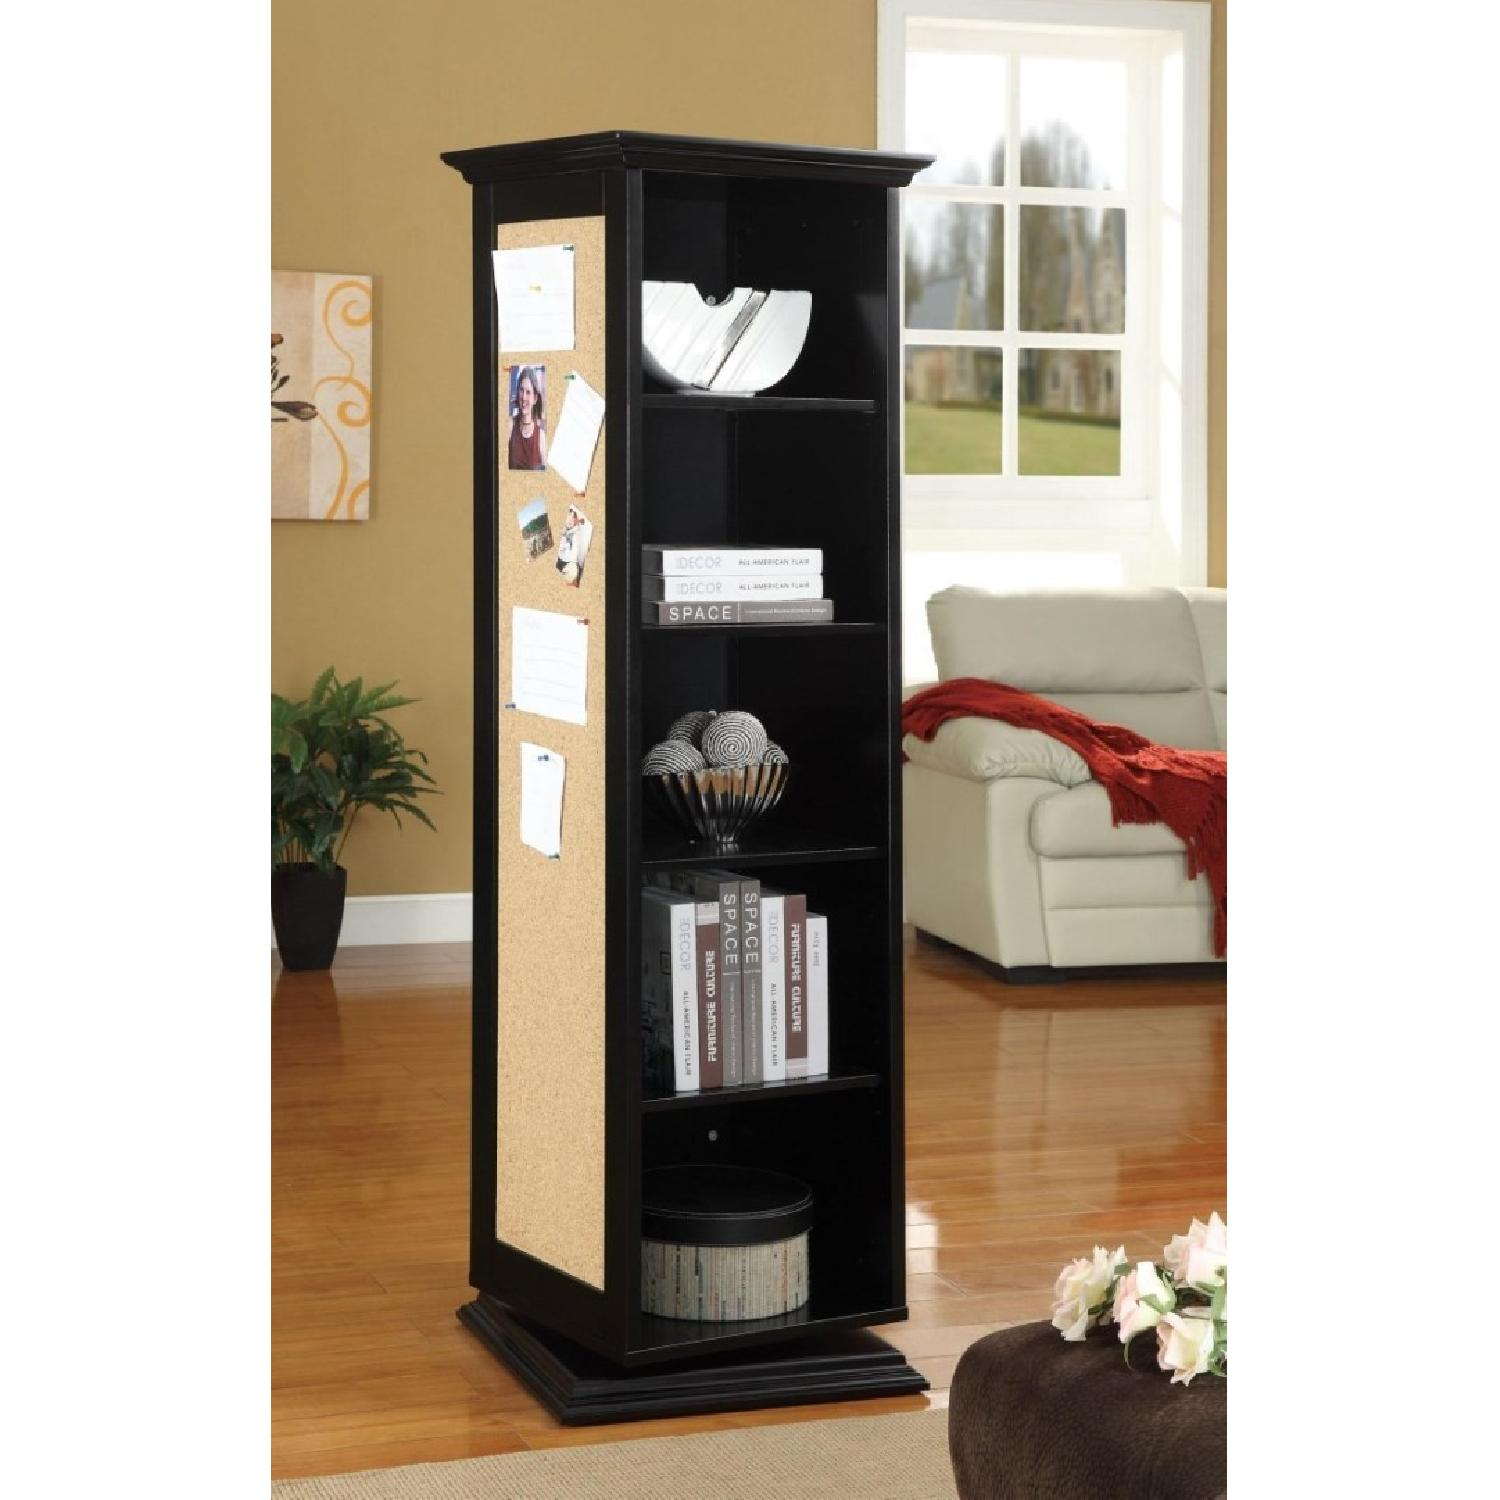 Swivel Cabinet w/ Mirror & Nailboard in Black Finish - image-2